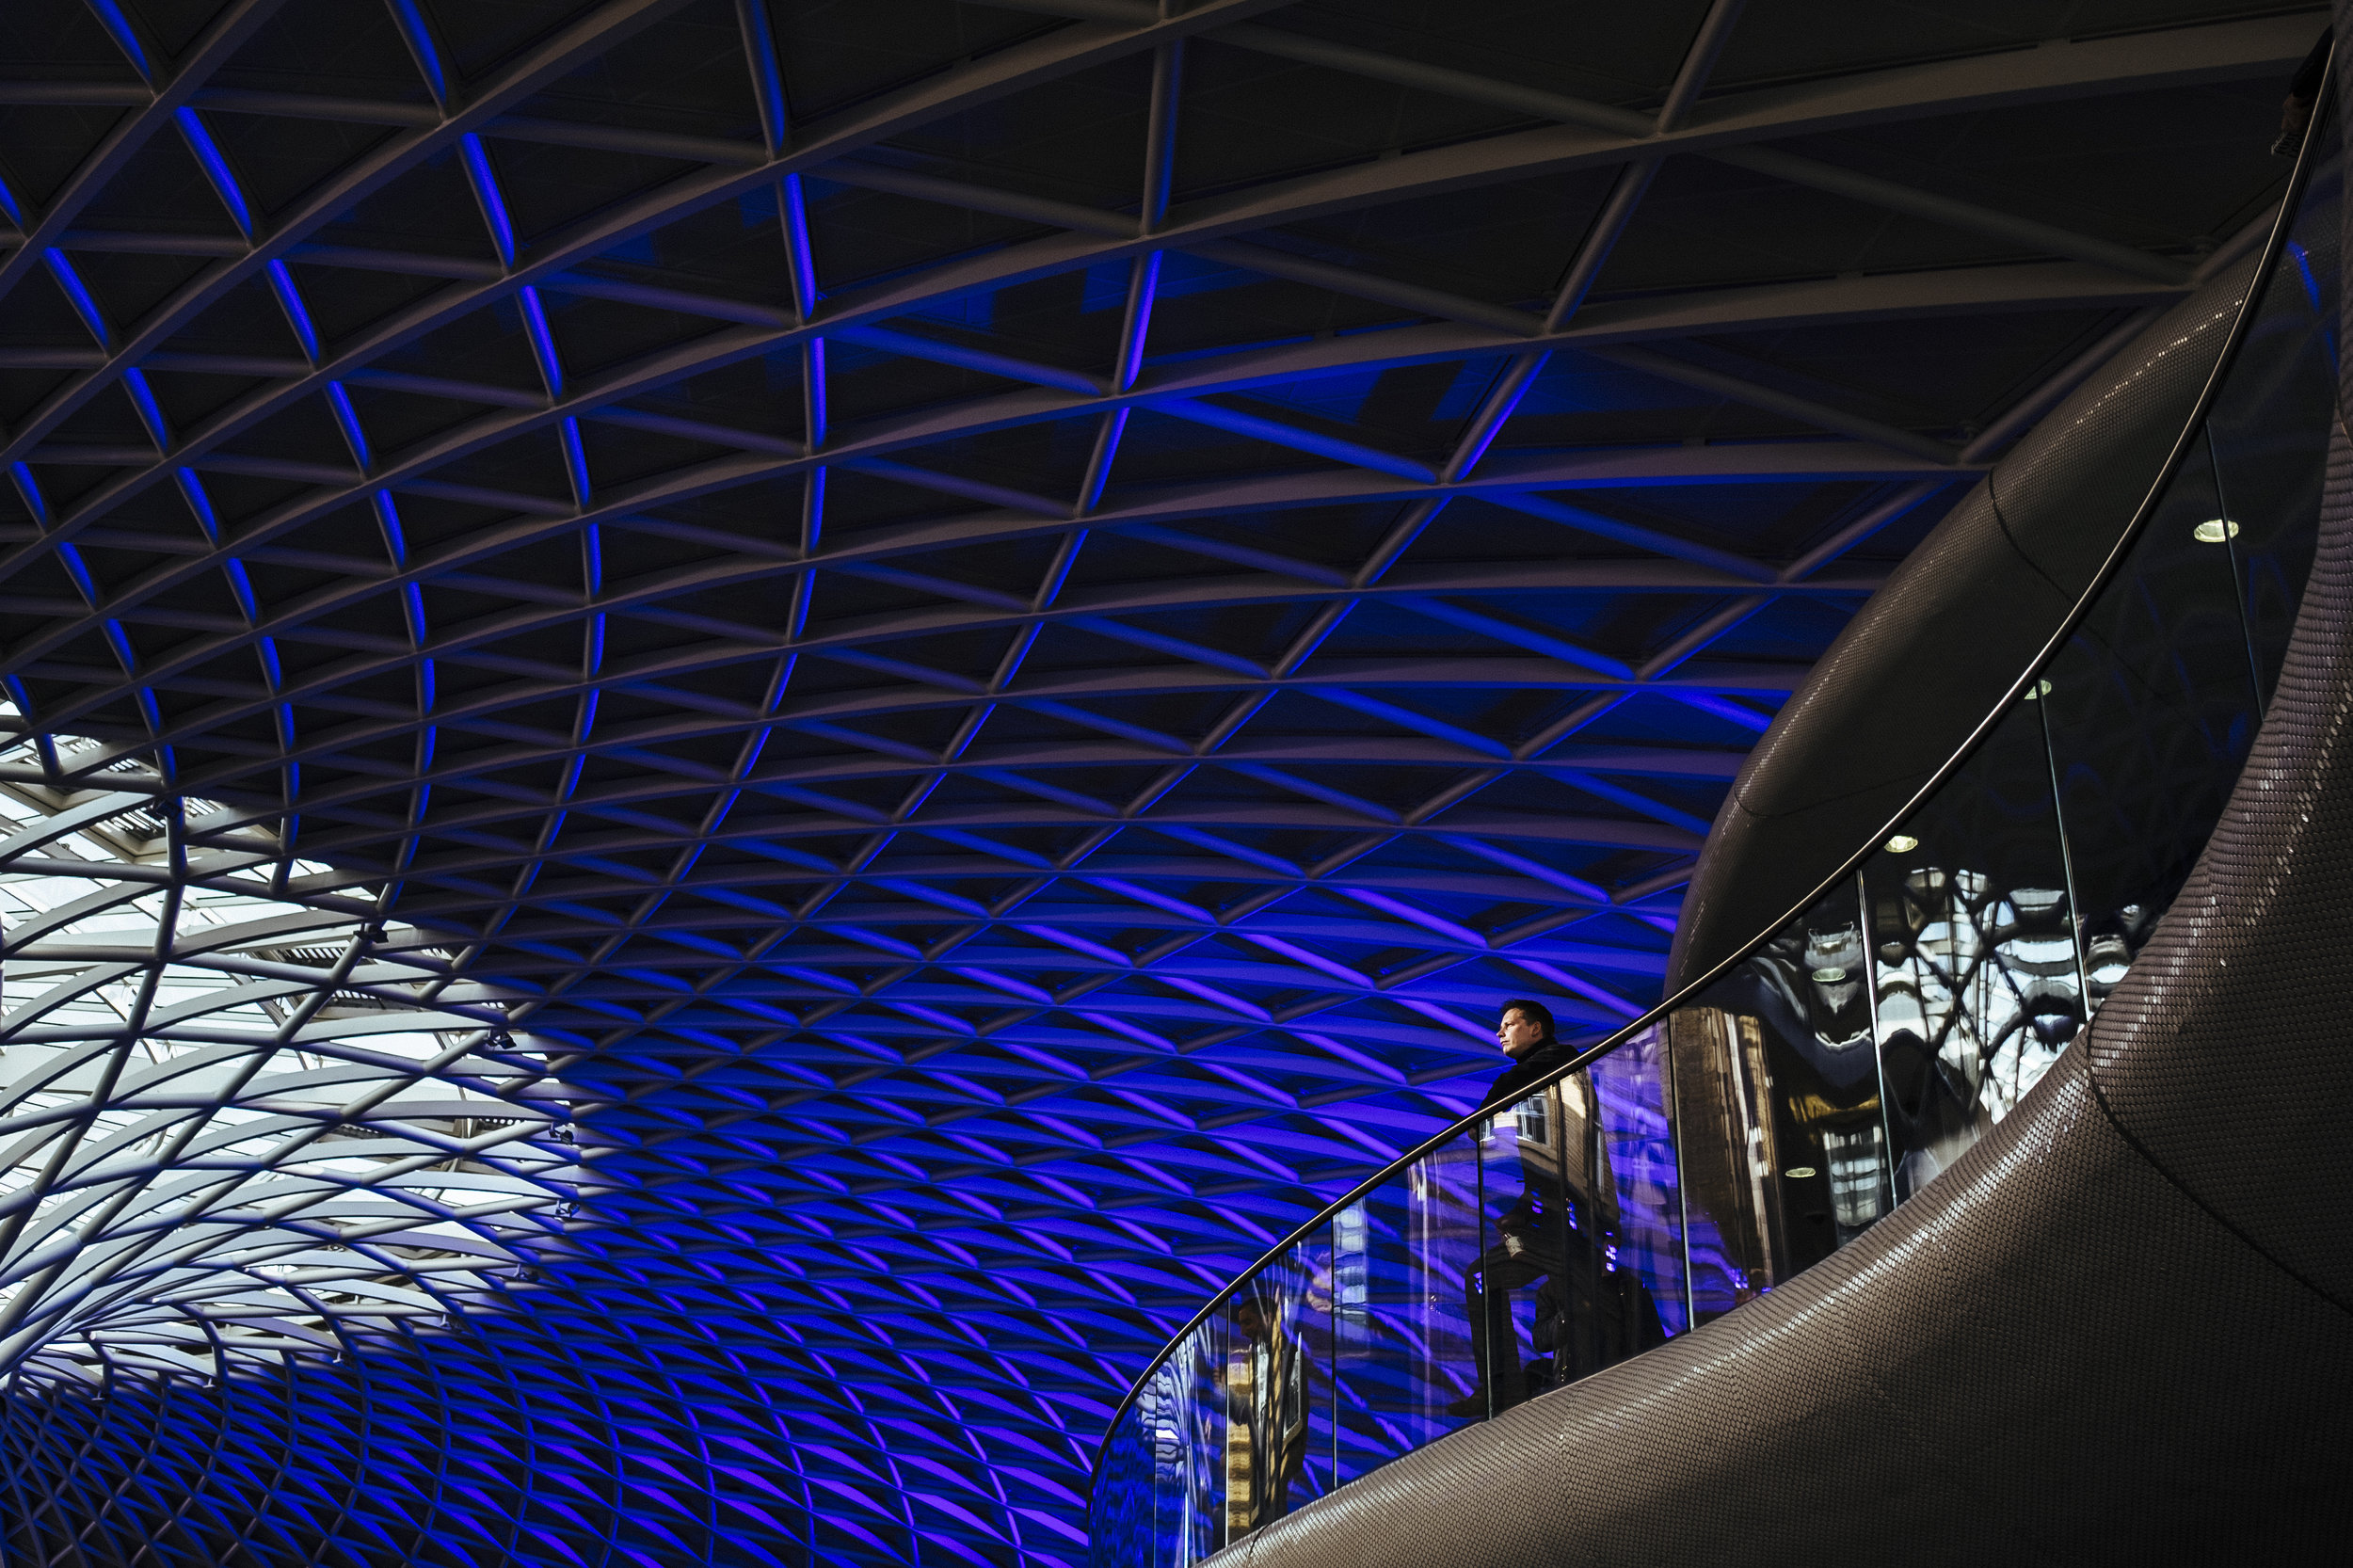 A person looks out from an elevated concourse at King's Cross railway station, London, Thursday, April 14, 2016.